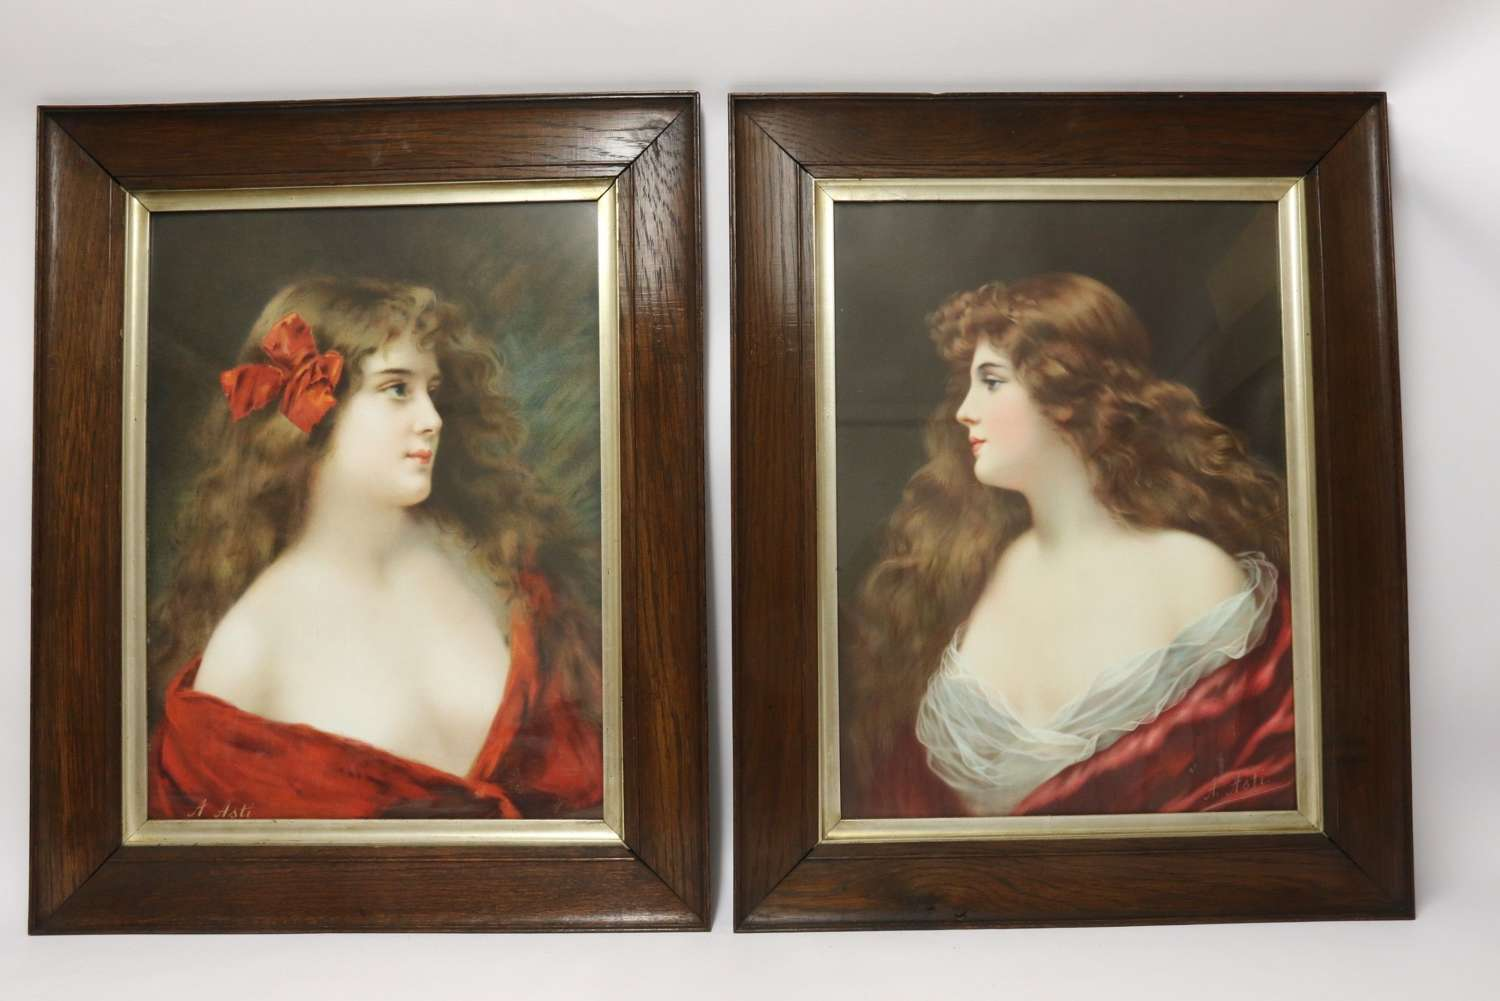 A Superb Pair Of Victorian Angelo Asti Prints Of A Glamorous Young Woman.